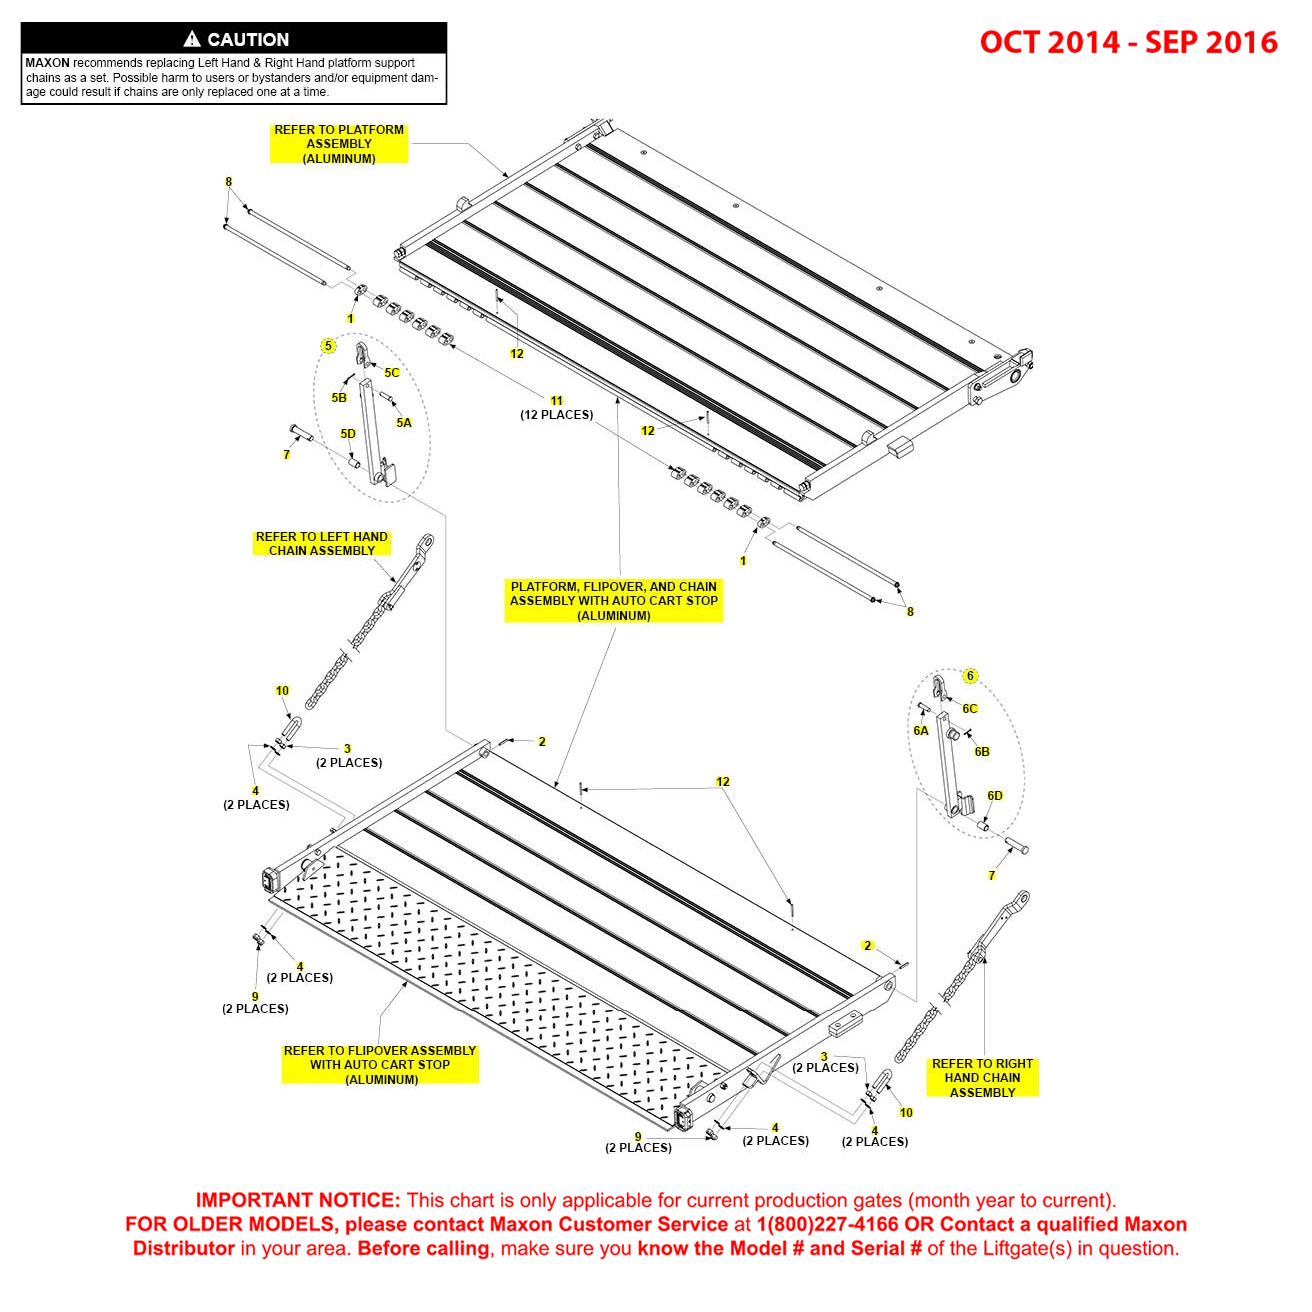 BMR (Oct 2014 - Sep 2016) Aluminum Platform Flipover And Chain Assembly With Auto Cart Stop